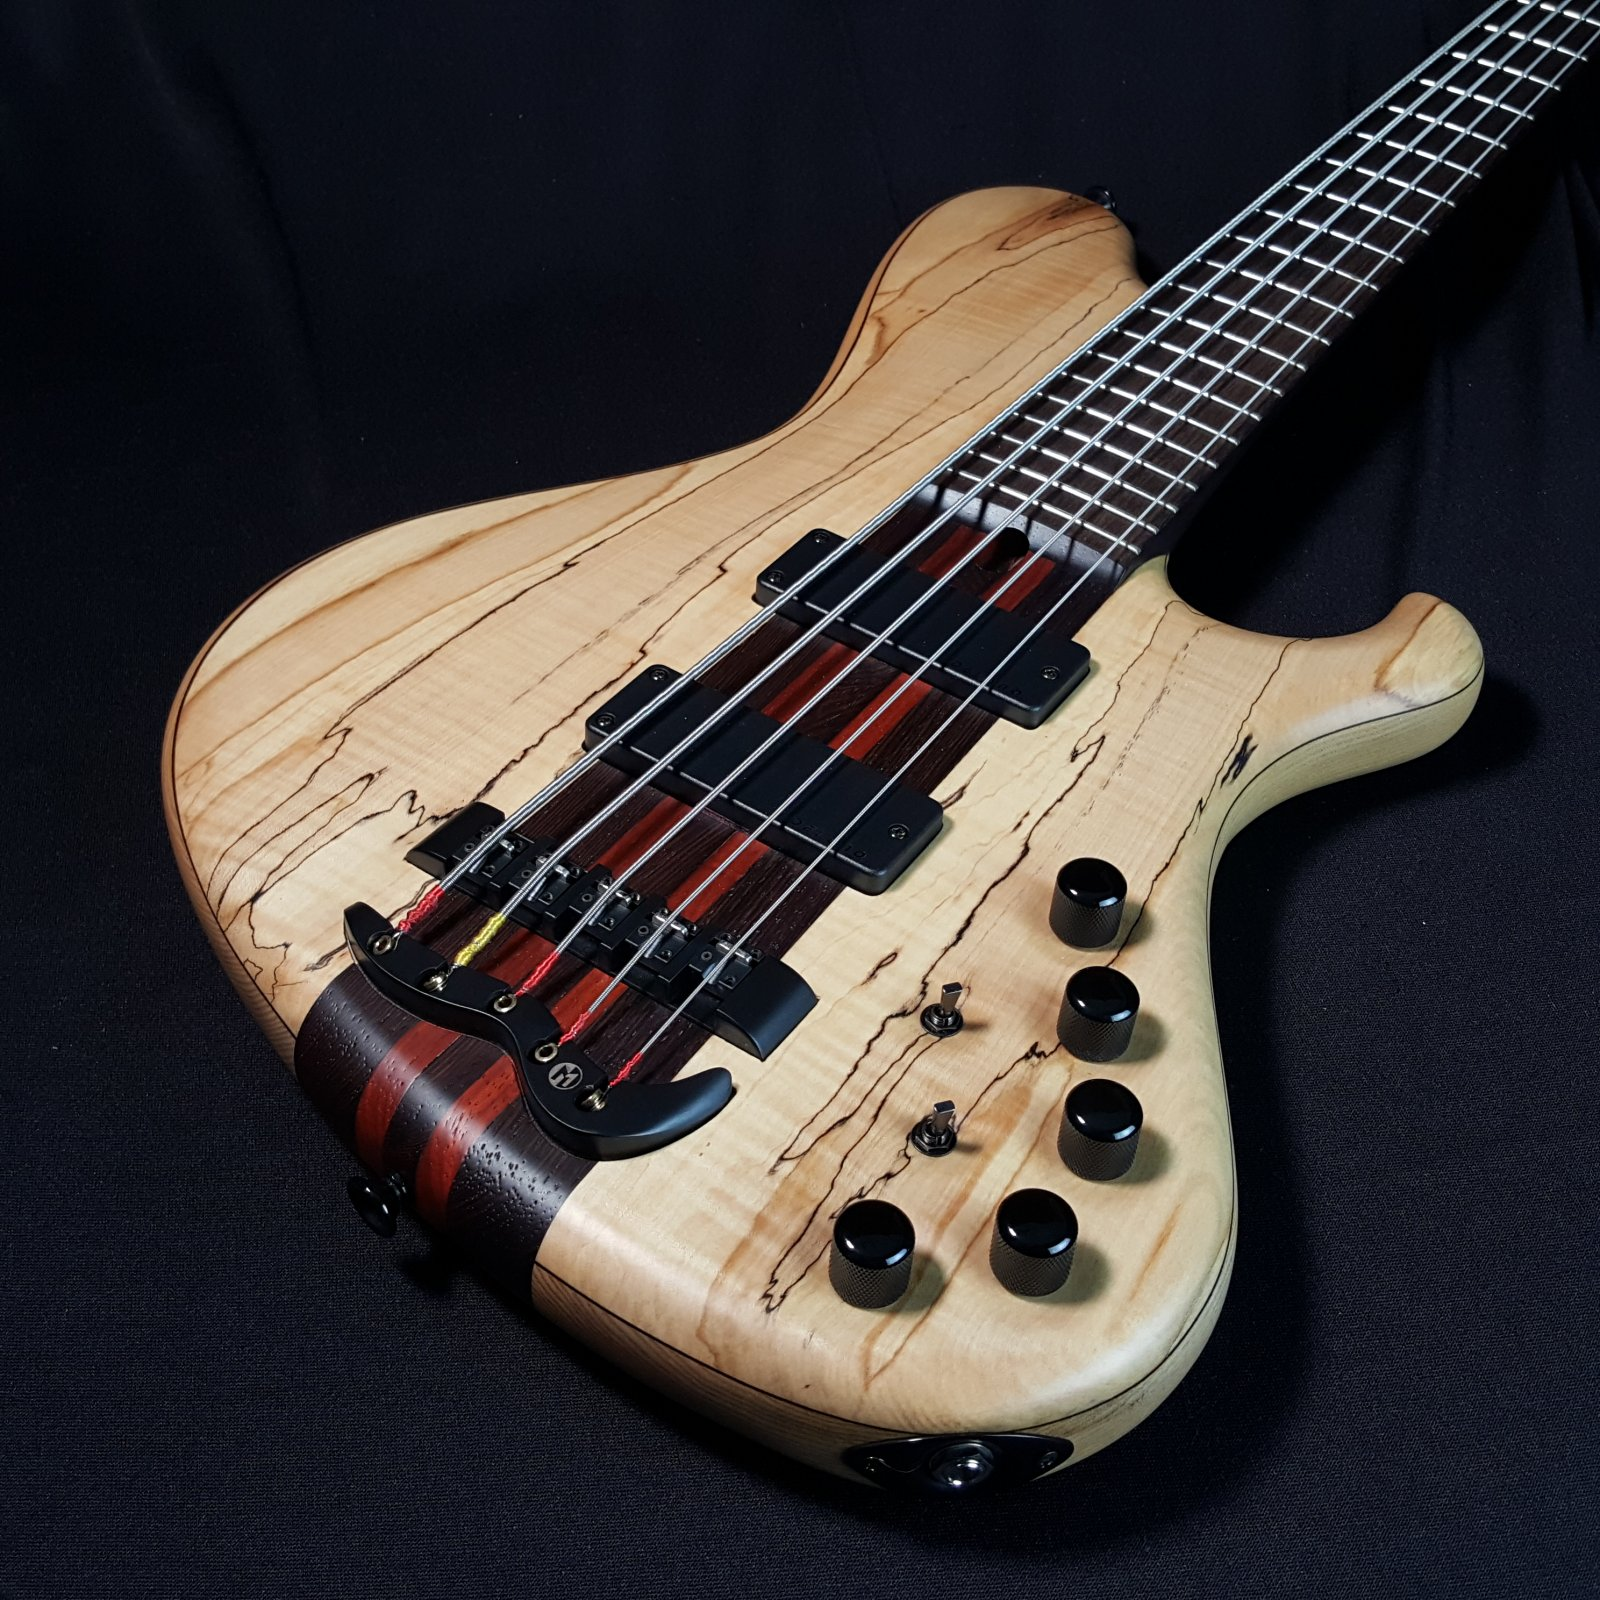 Maruszczyk Paddock 5a 5 String Neck Through Body